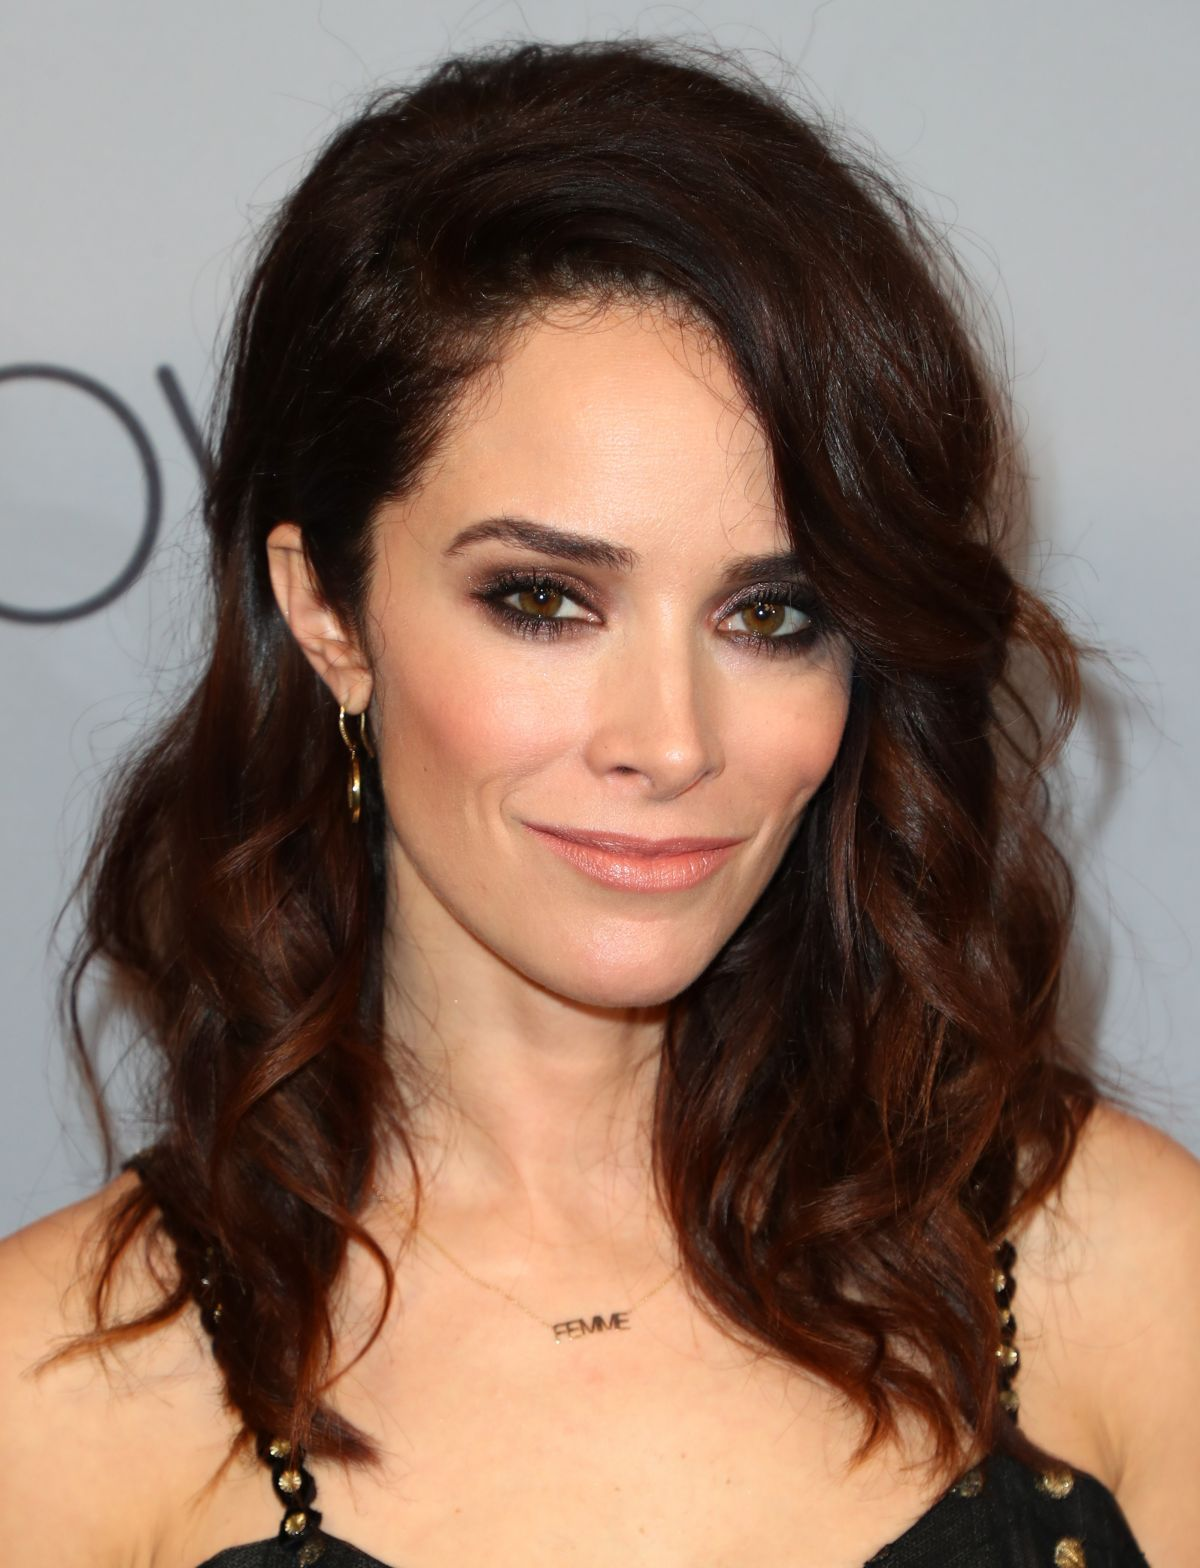 62479021_abigail-spencer-at-instyle-warner-bros-golden-globes-after-party-in-los-angeles.jpg